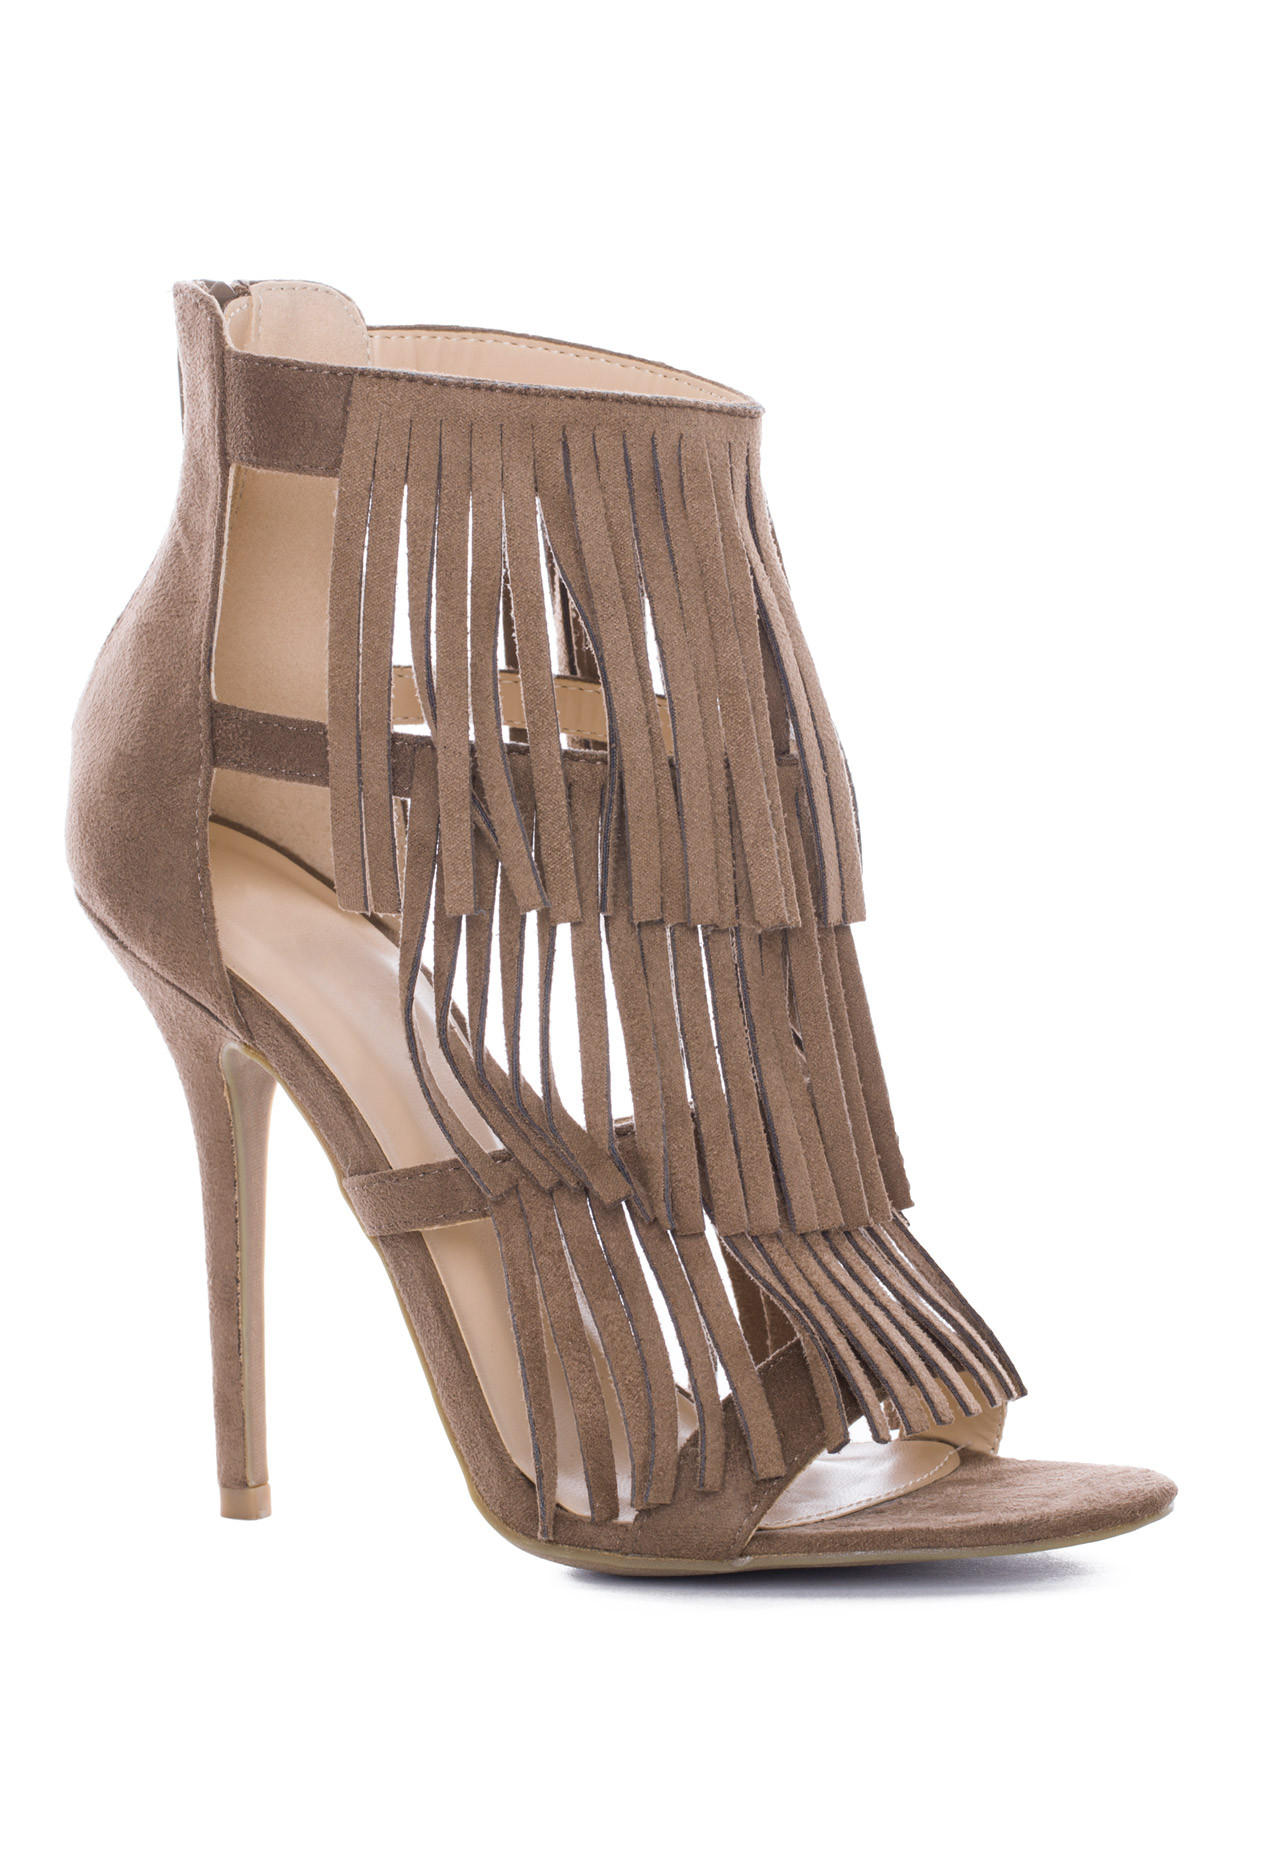 quincy fringe heels taupe from shop priceless new arrivals forest green sofa for sale forest green sofas